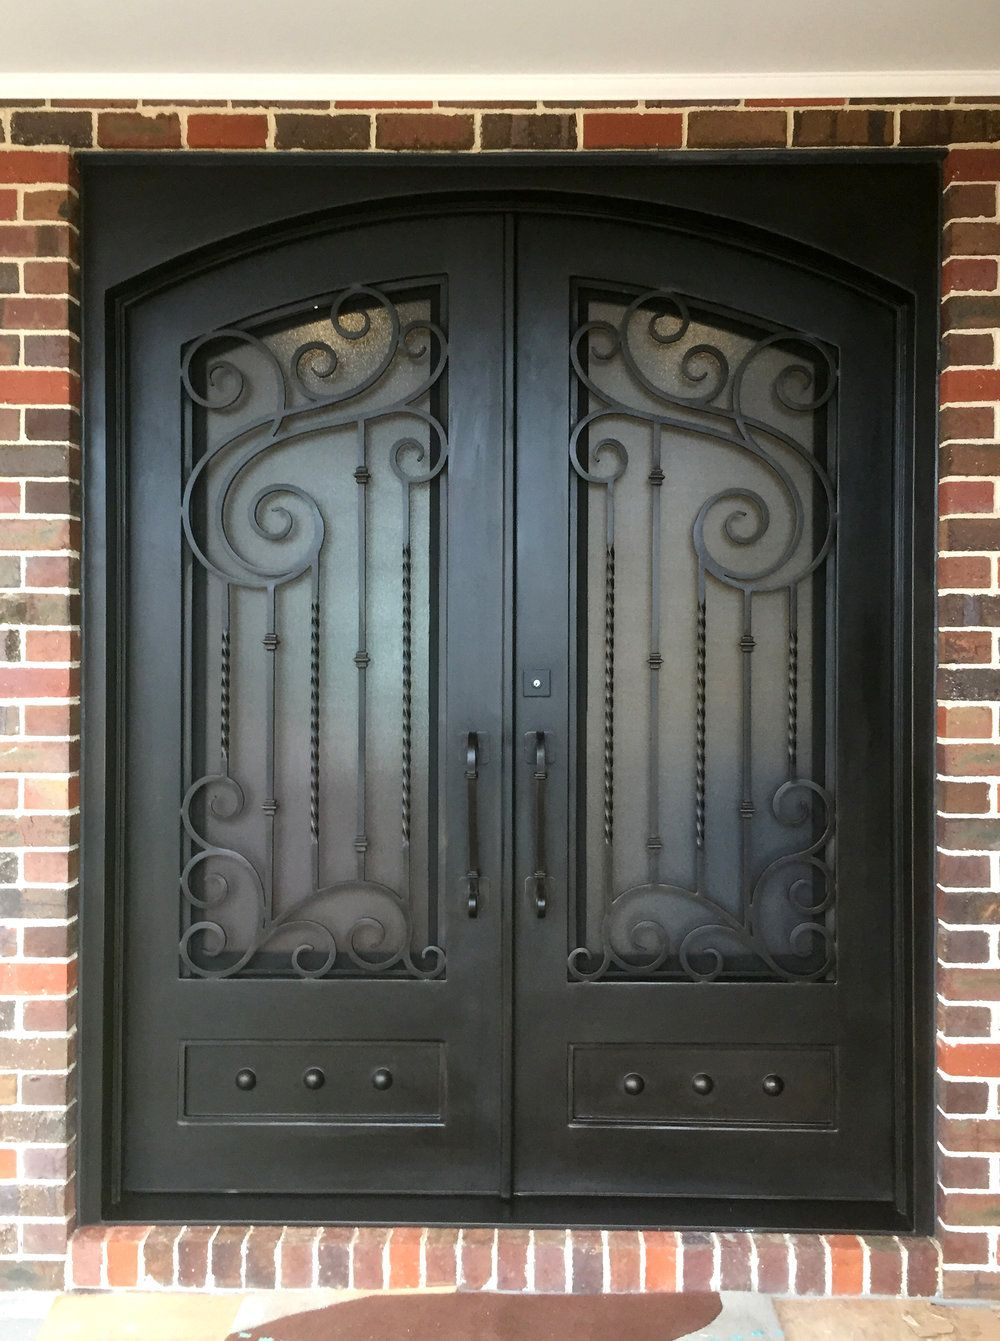 A Unique Wrought Iron Entry Door By Adoore Iron Designs Located In